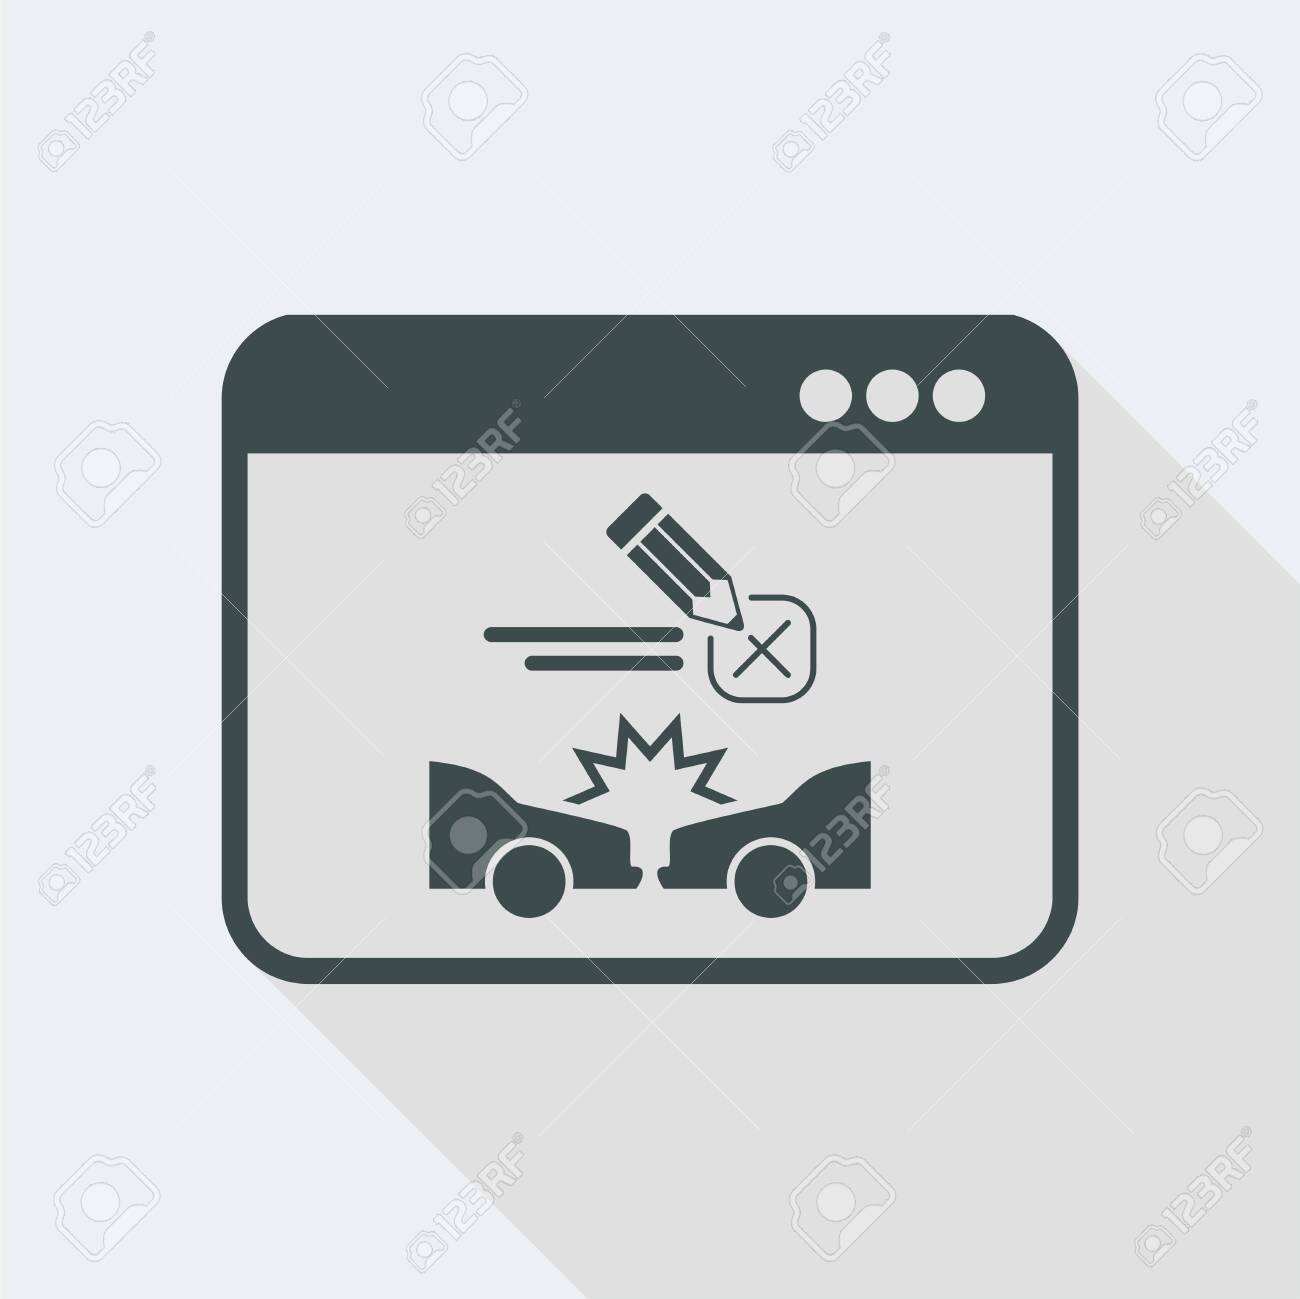 Flat and isolated vector illustration icon with minimal modern design and long shadow - 119750528